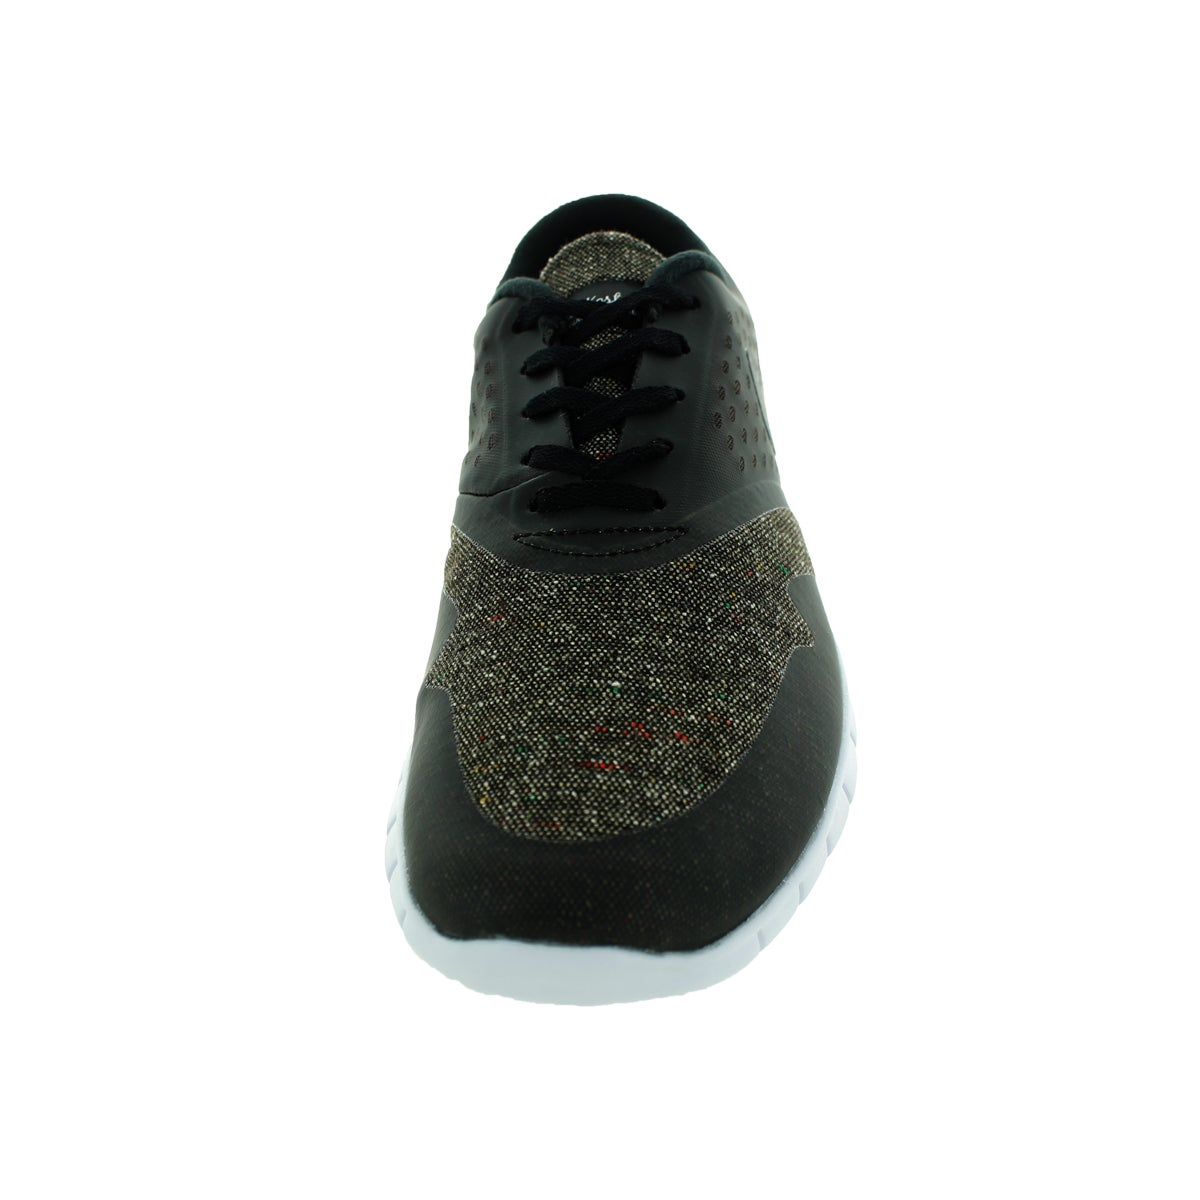 fe4a60a3208 Shop Nike Men s Eric Koston 2 Max Baroque Brown Black Black Running Shoe -  Free Shipping Today - Overstock - 12115430